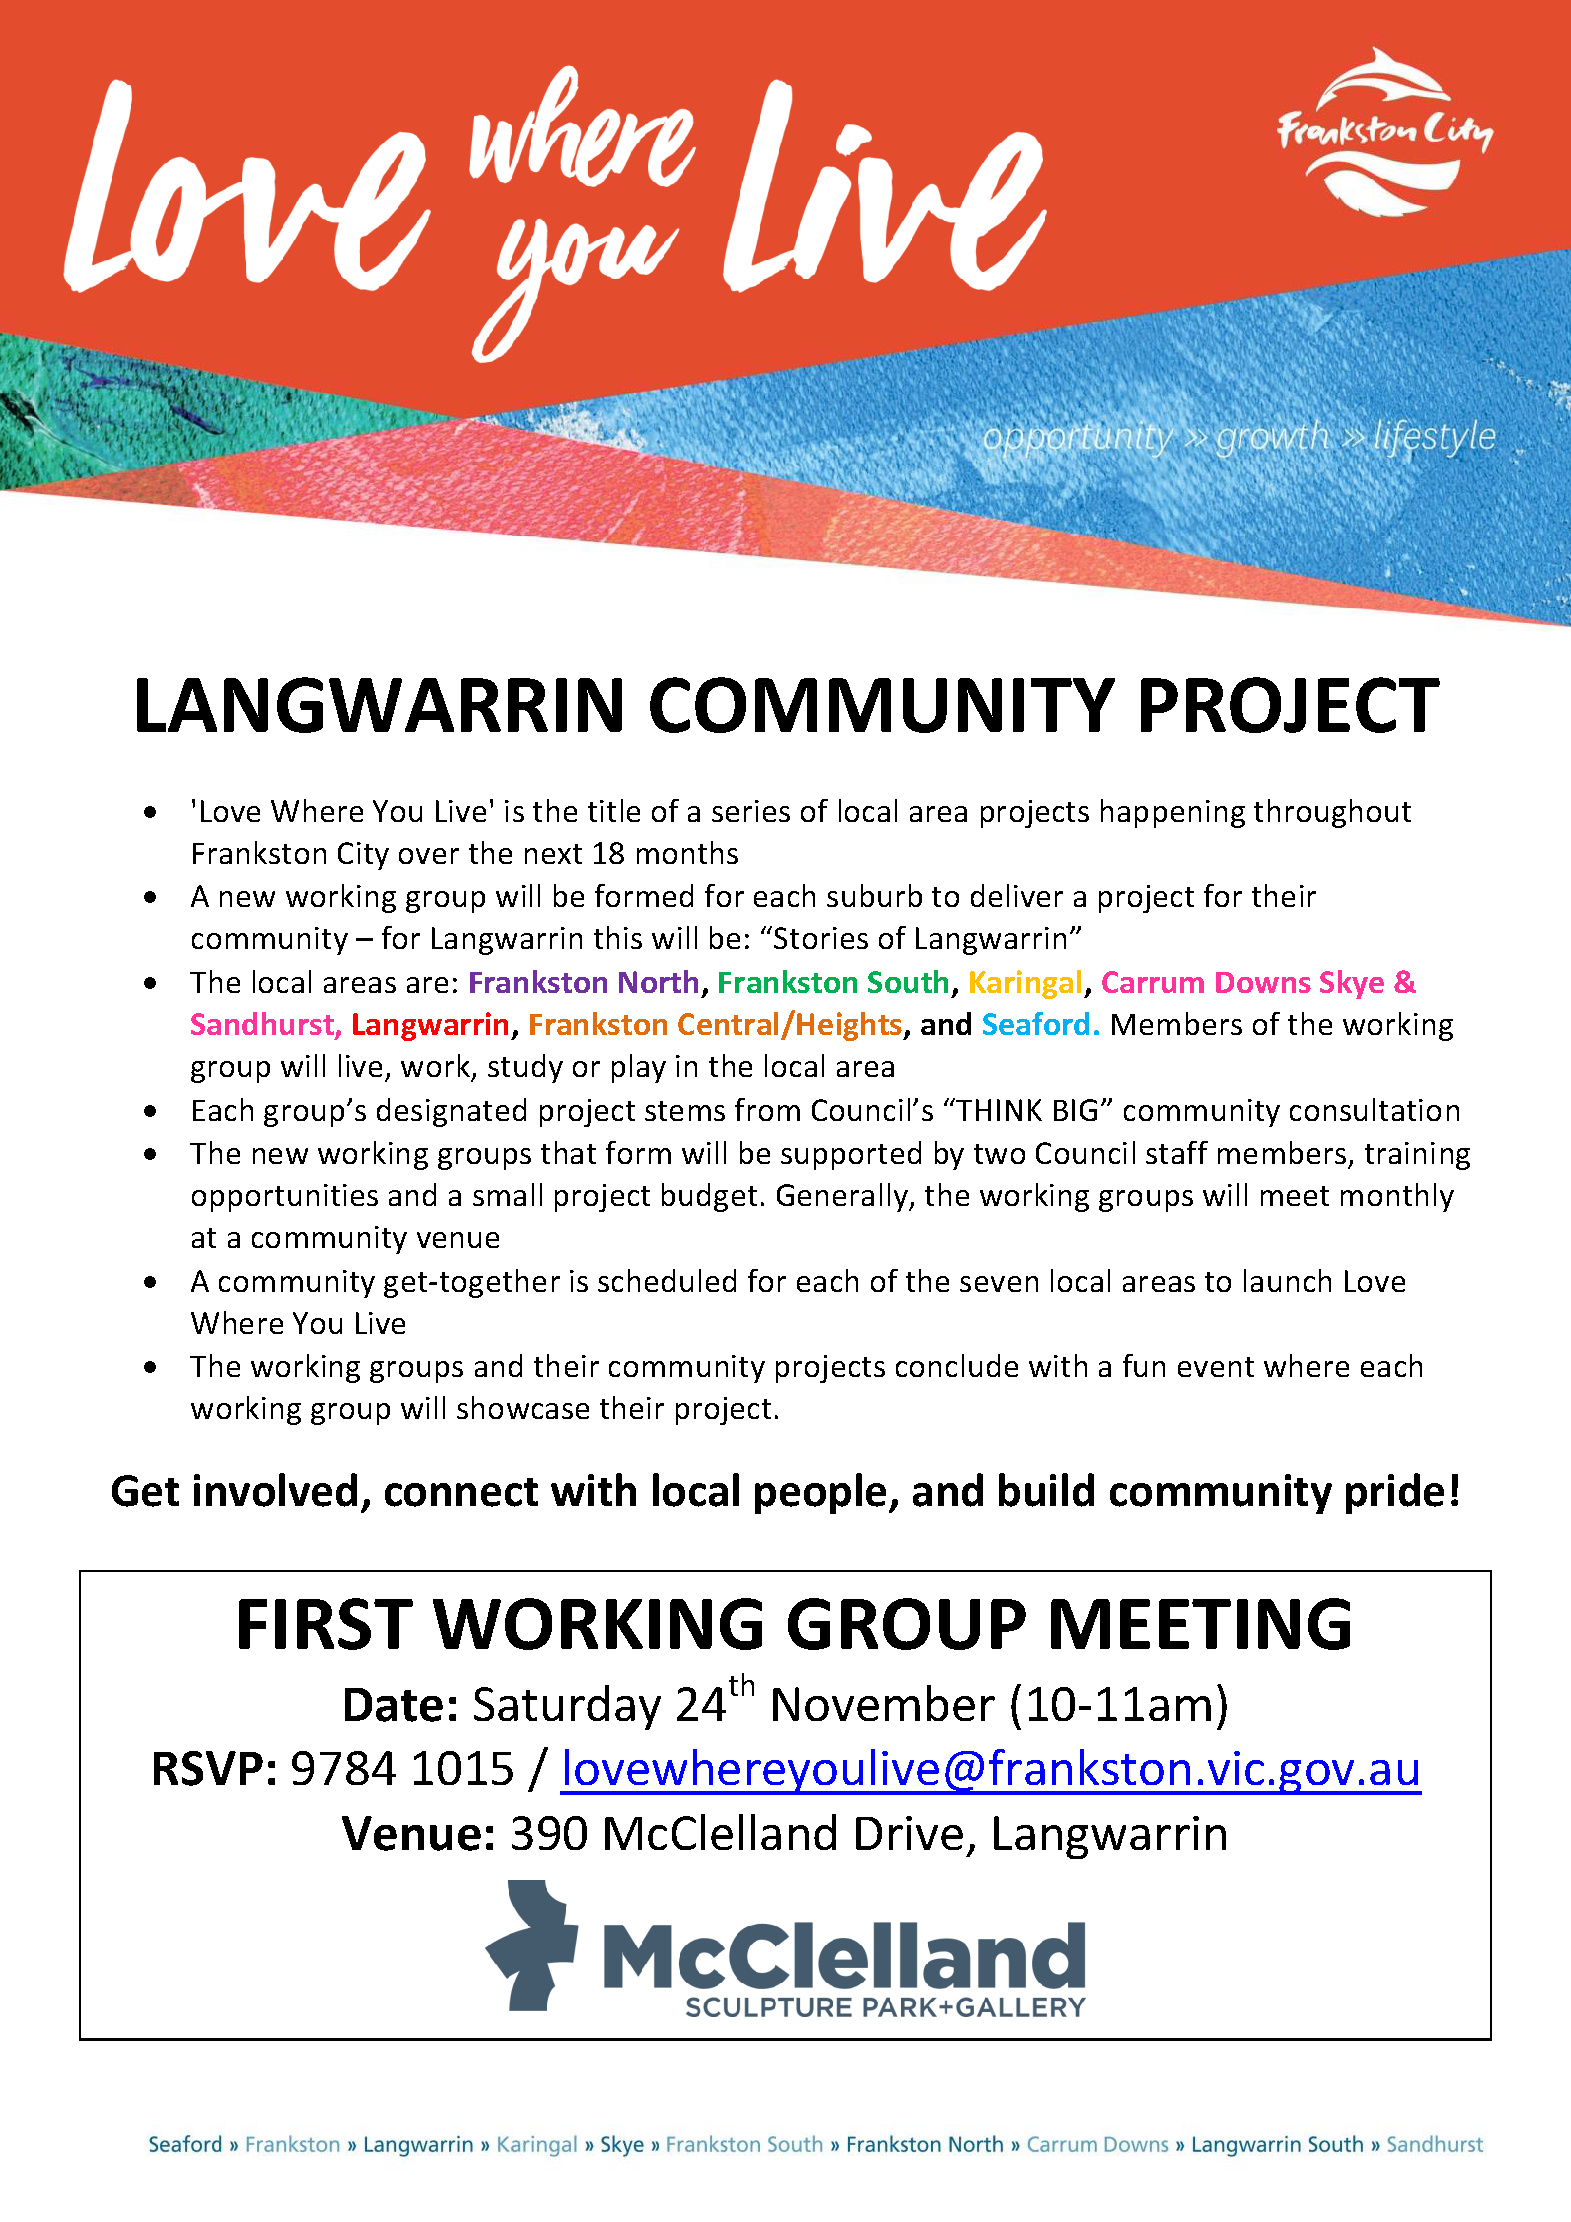 Langwarrin Community Project 2019